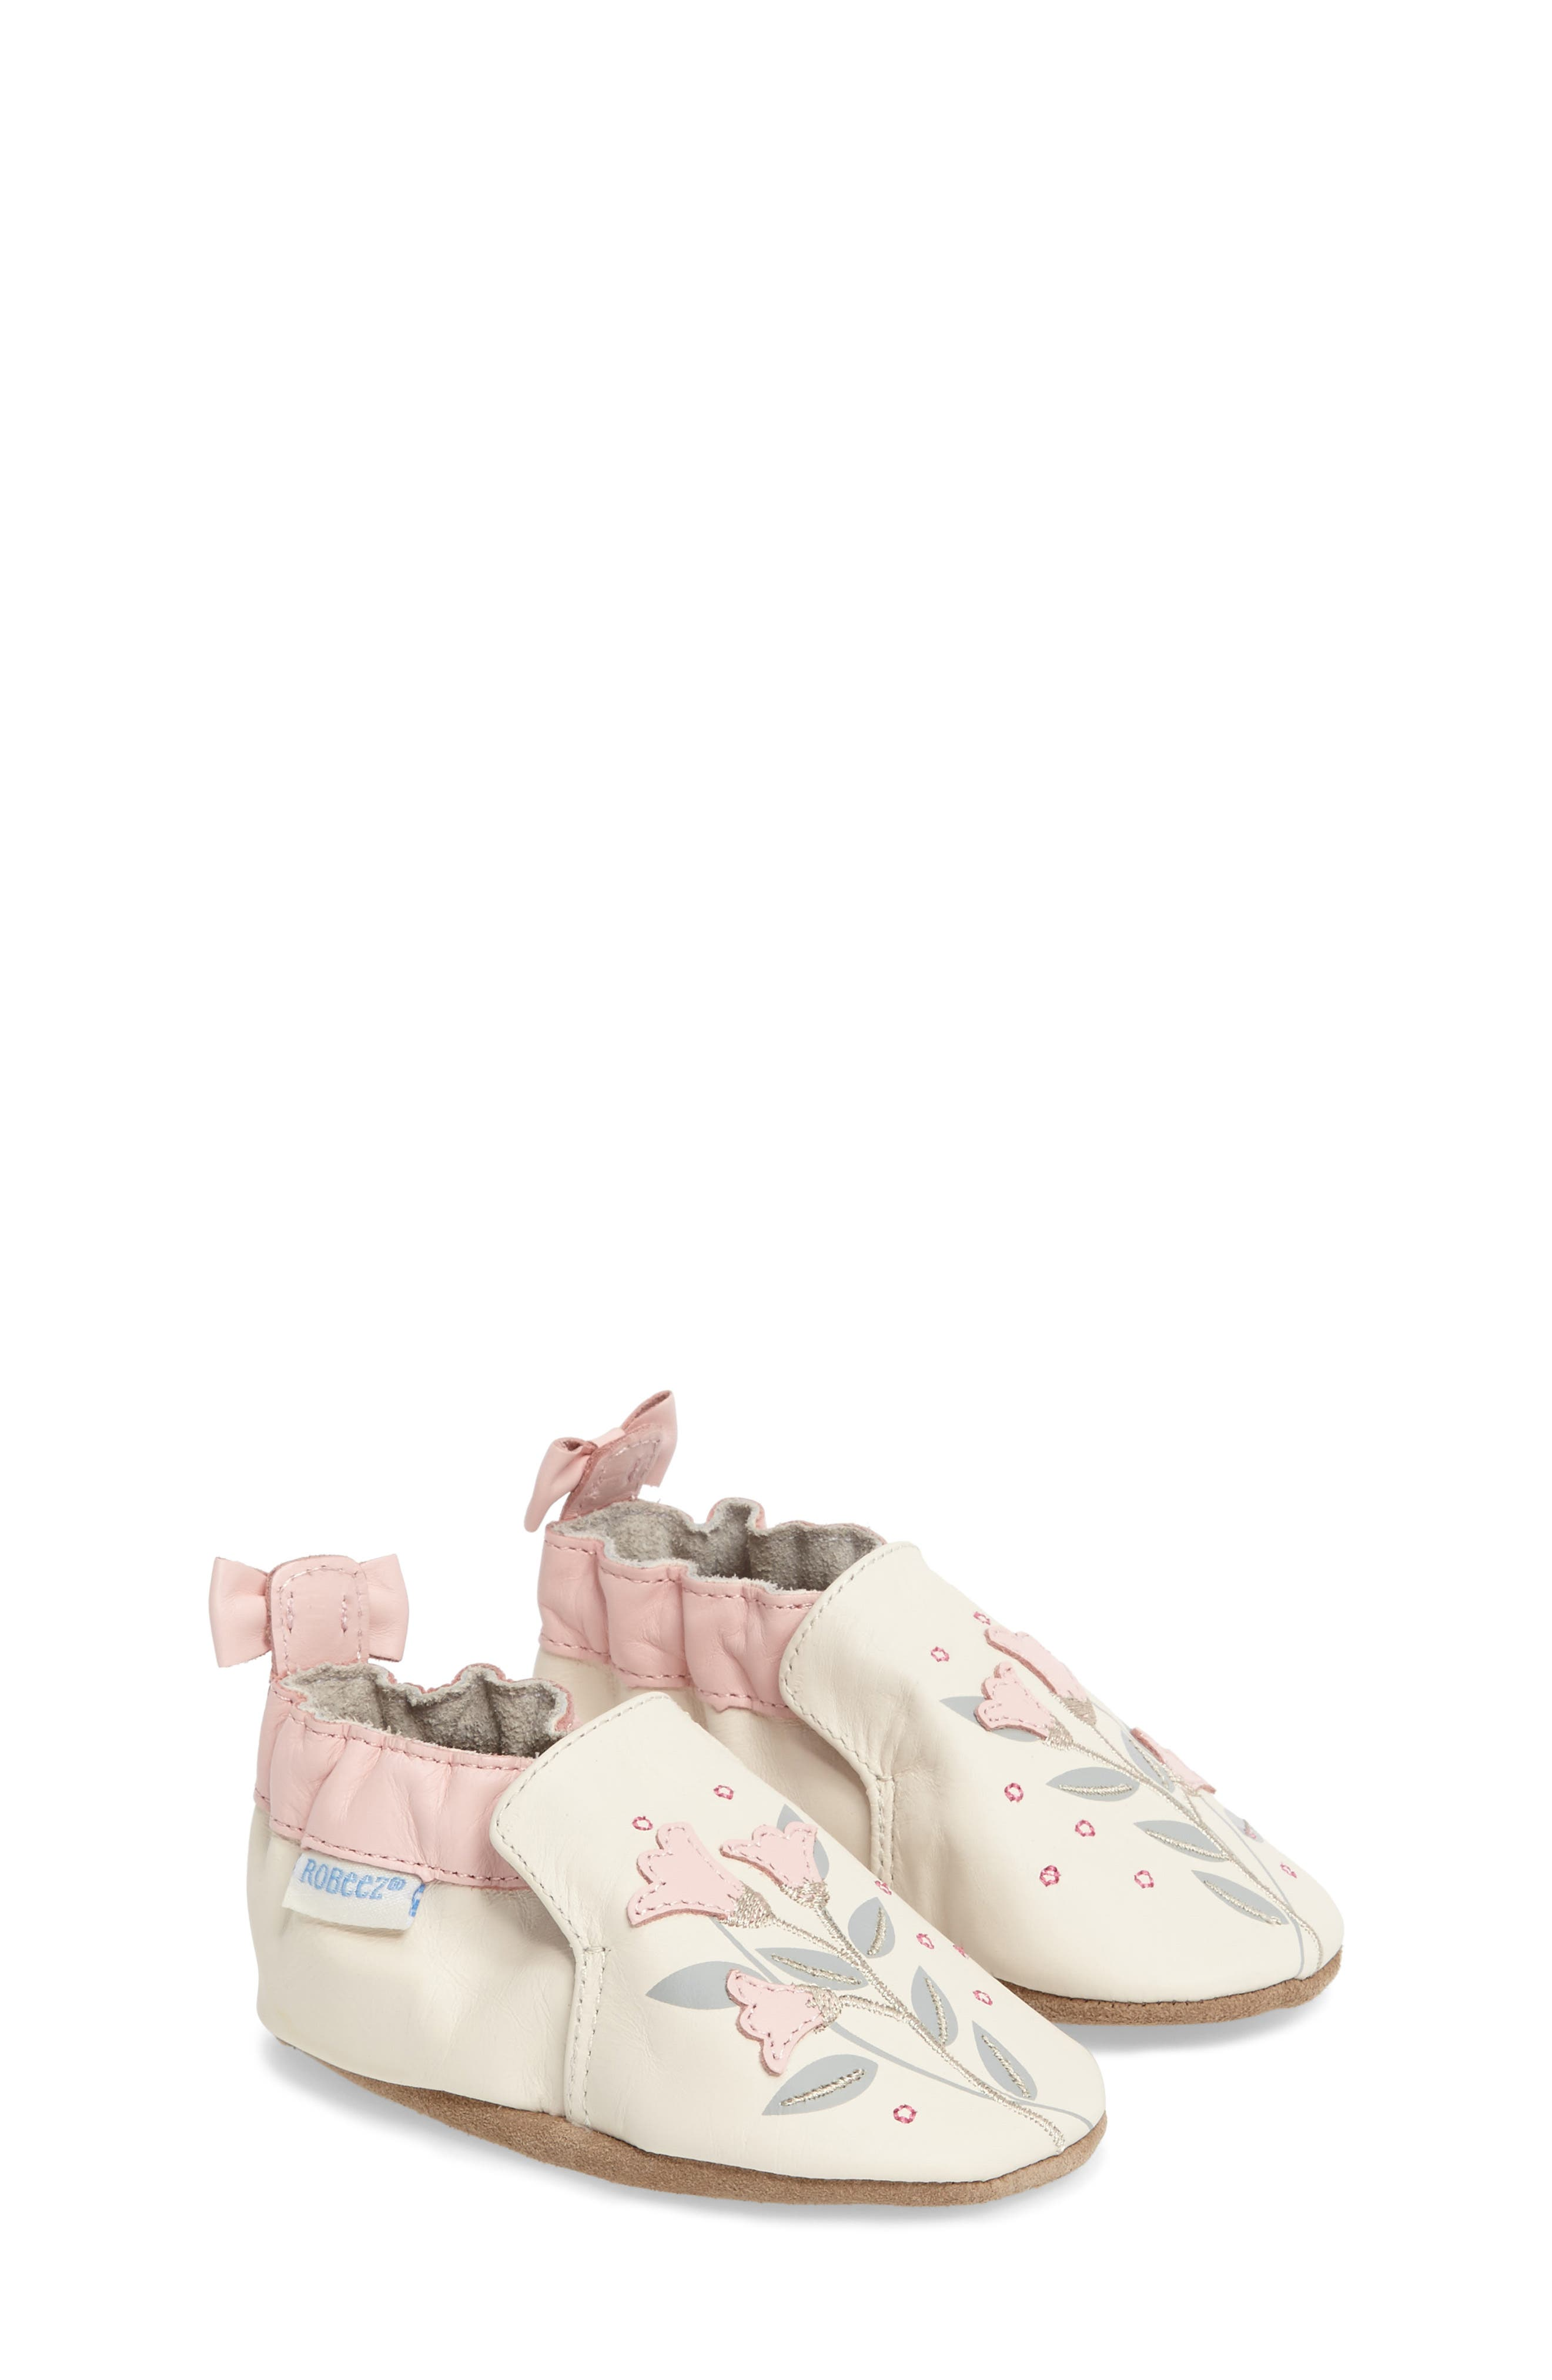 Rosealean Crib Shoe,                         Main,                         color, Cream/ Pink Leather